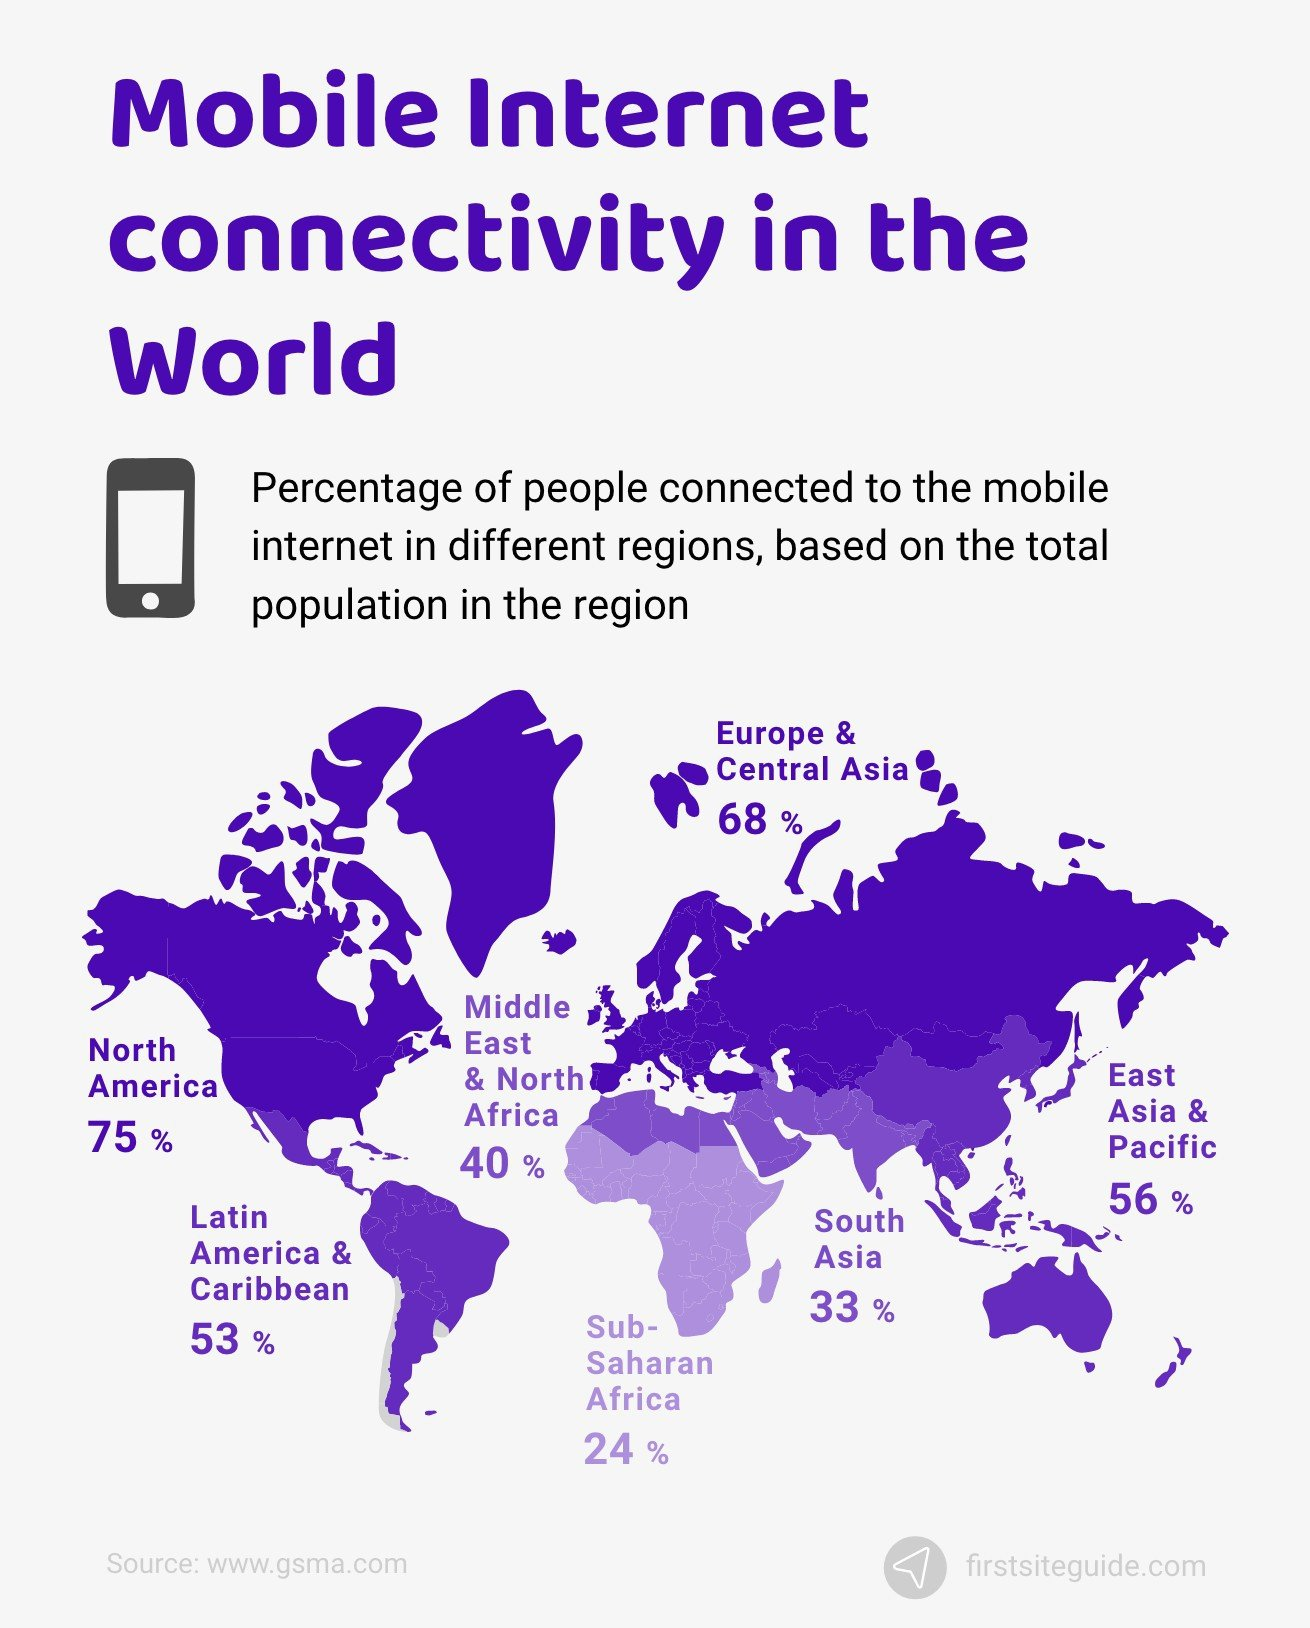 Mobile Internet connectivity in the World